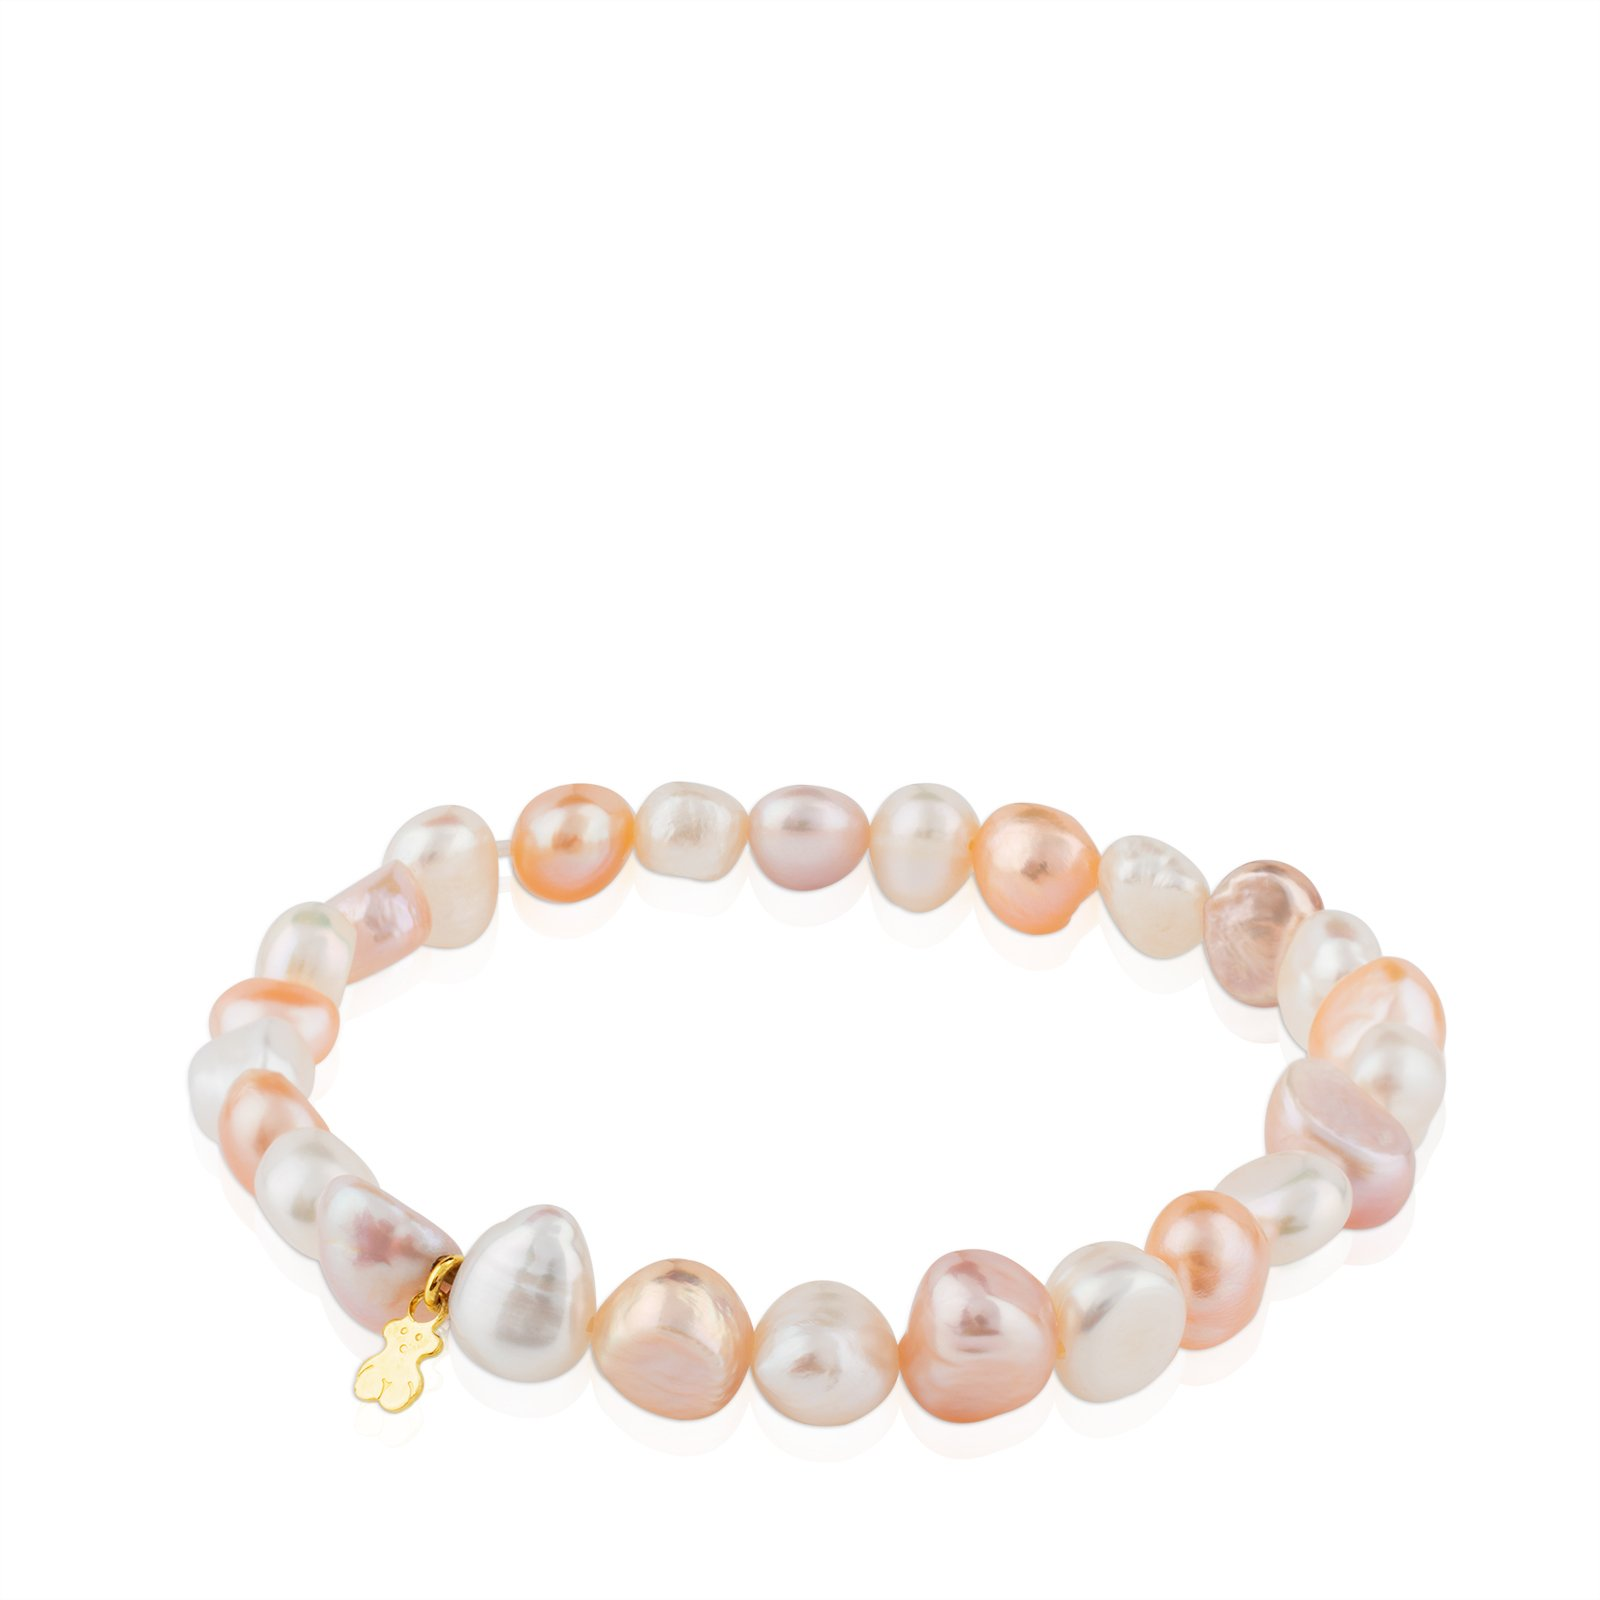 TOUS Pearls 18k Yellow Gold Stretch Bracelet with Multicolor Chinese Freshwater Cultured Pearl 7.0-7.5 mm by TOUS